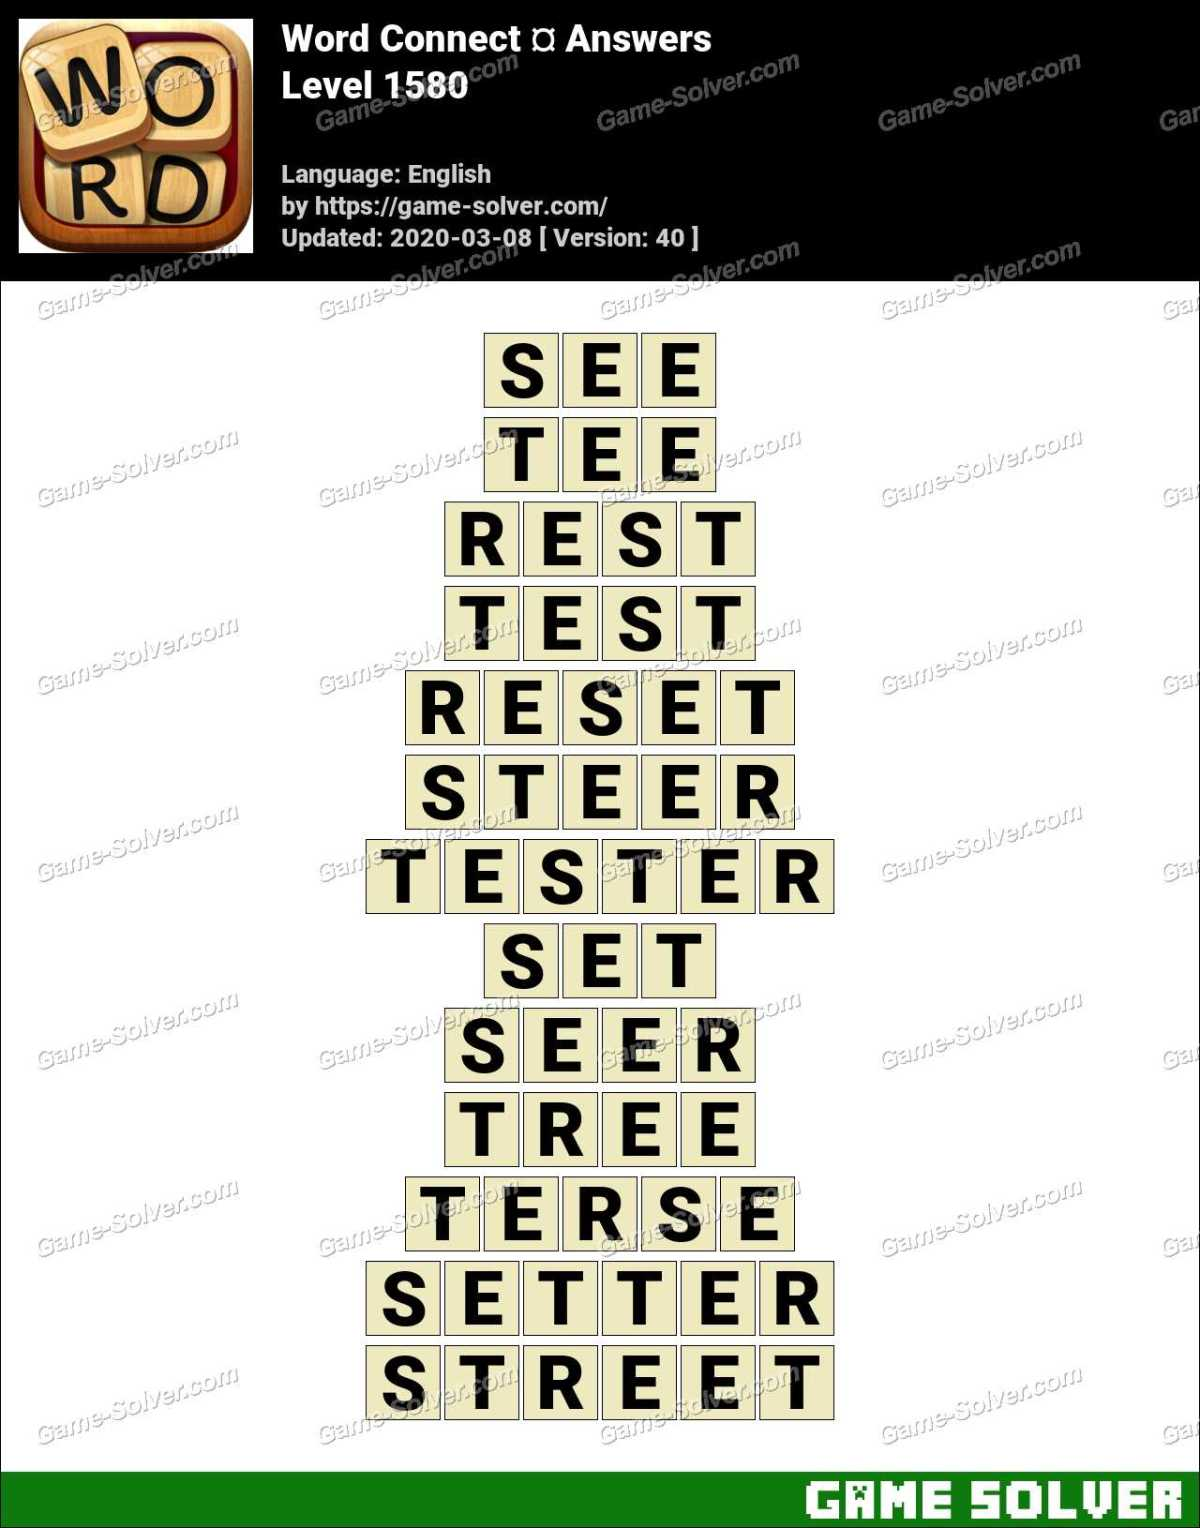 Word Connect Level 1580 Answers